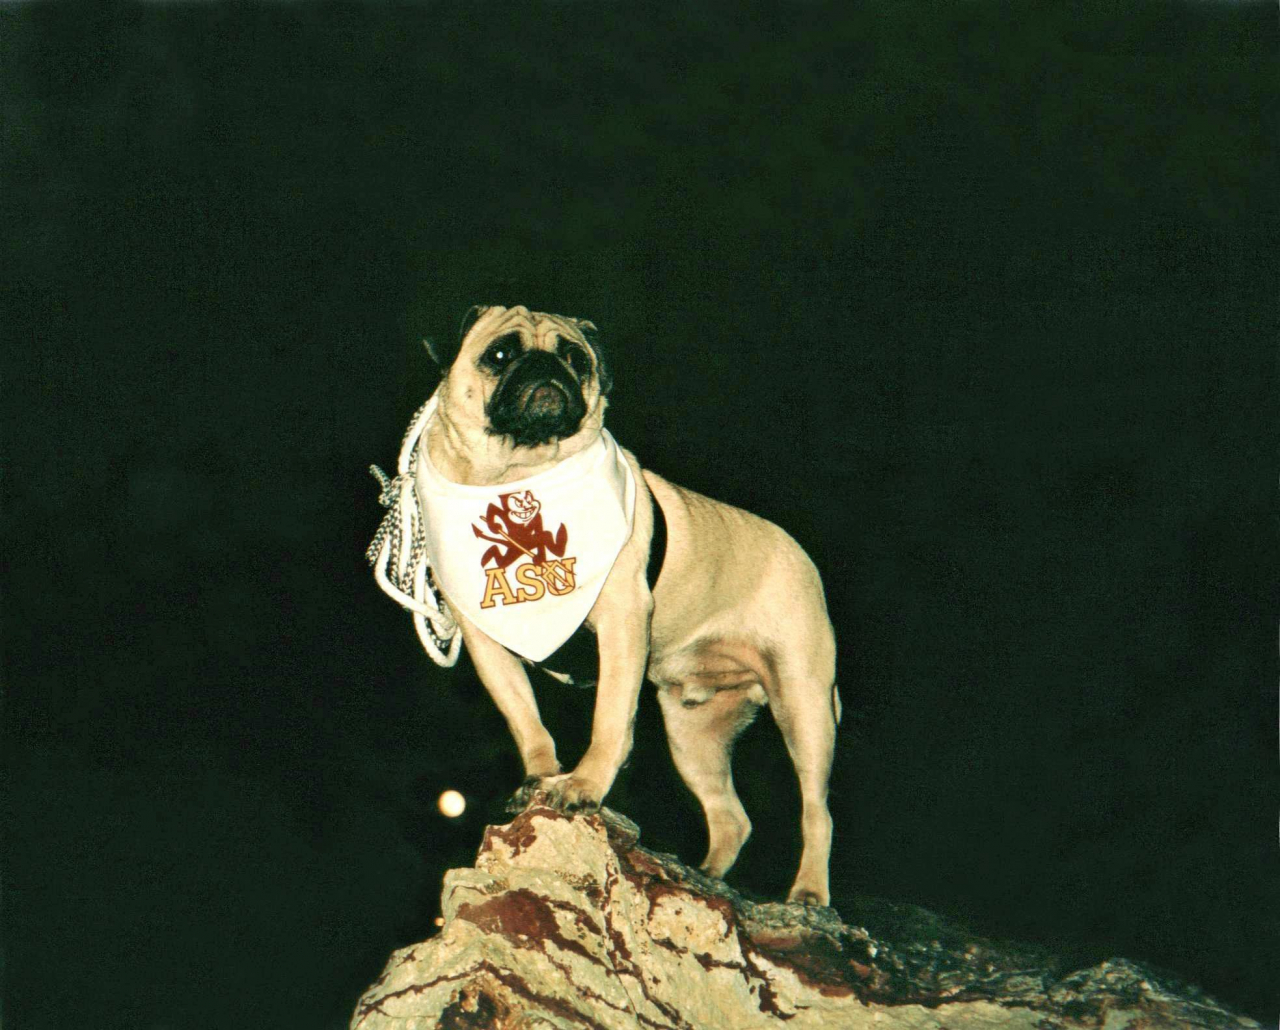 A picture from A Moon Lit Evenin atop Mt. Camelback by Vinny the Pug